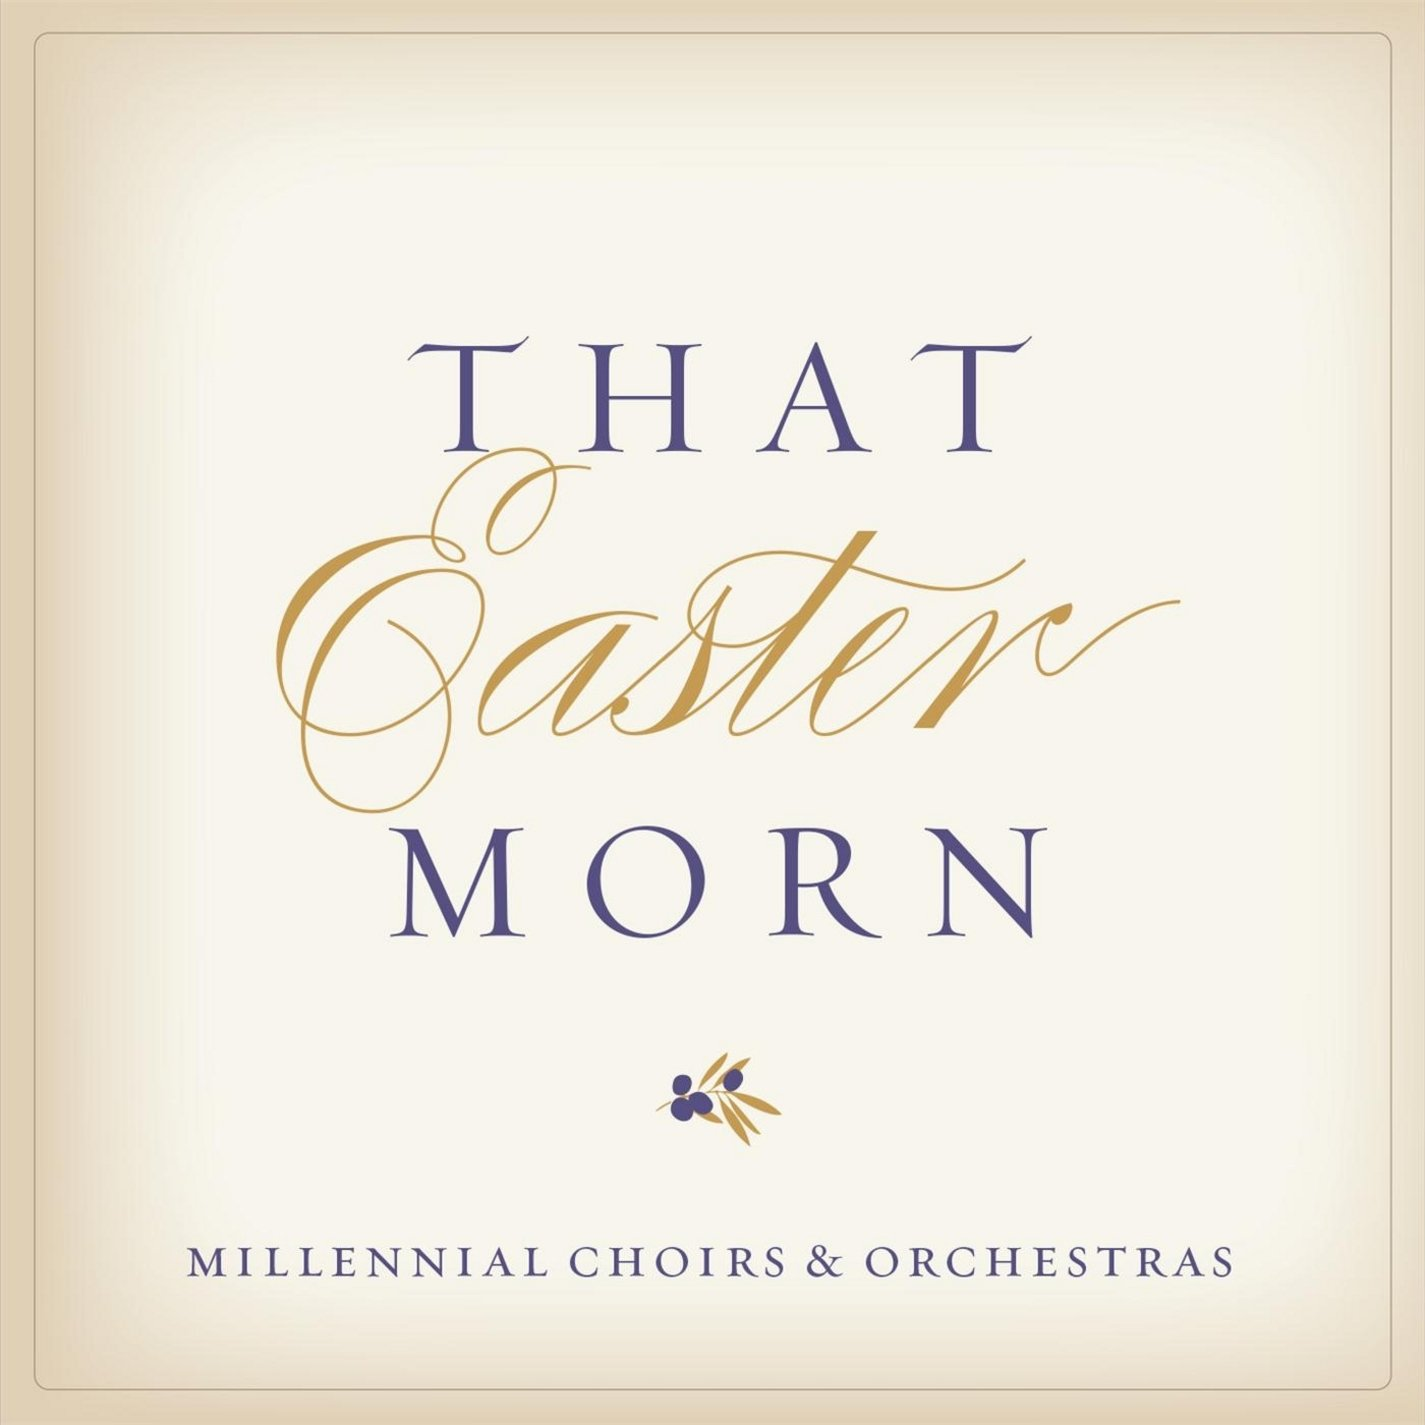 That Easter Morn by Millennial Choirs & Orchestras